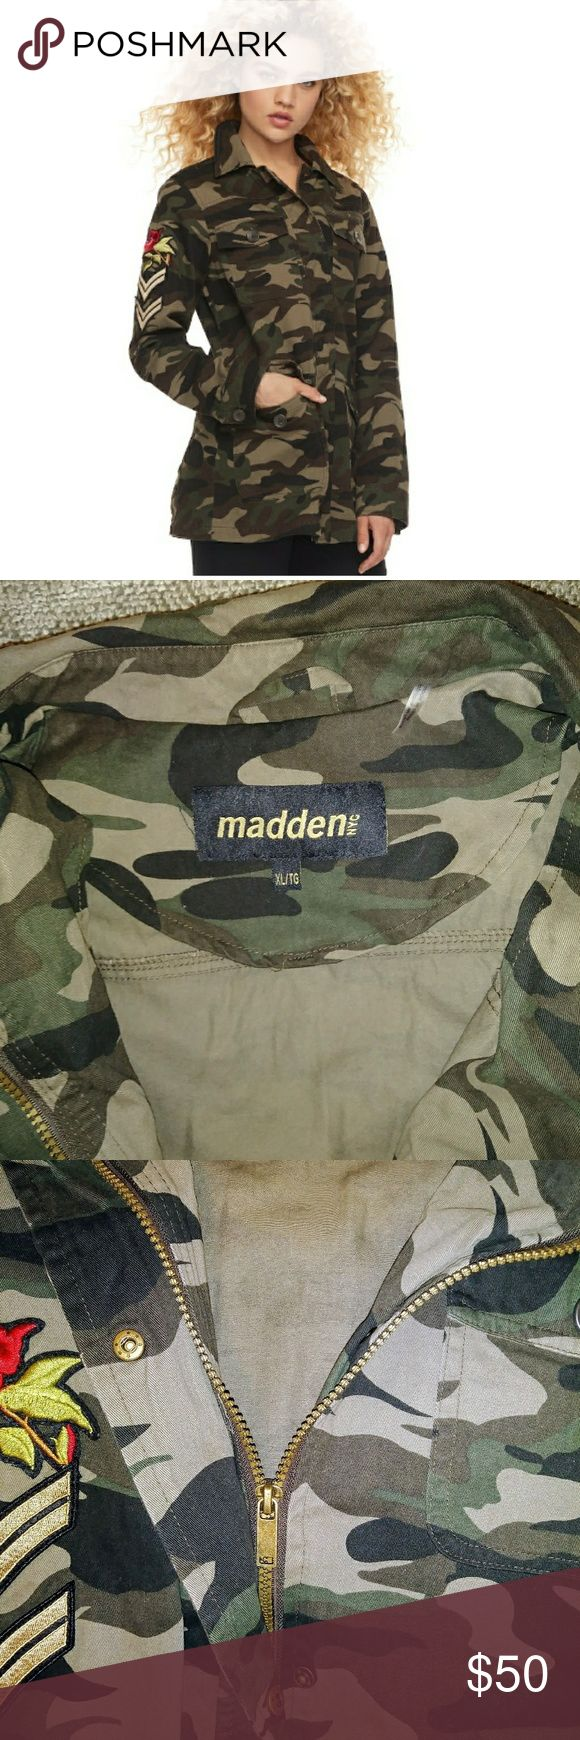 Madden NYC Patch Camo Utility Jacket Youth LG Madden NYC Patch Camo Utility Jacket  Patched long sleeves rose on right sleeve,camo pattern,zip and snap front,4 pockets.100% cotton.NWT 80$. Not Negotiable!!!!! Madden NYC Jackets & Coats Utility Jackets